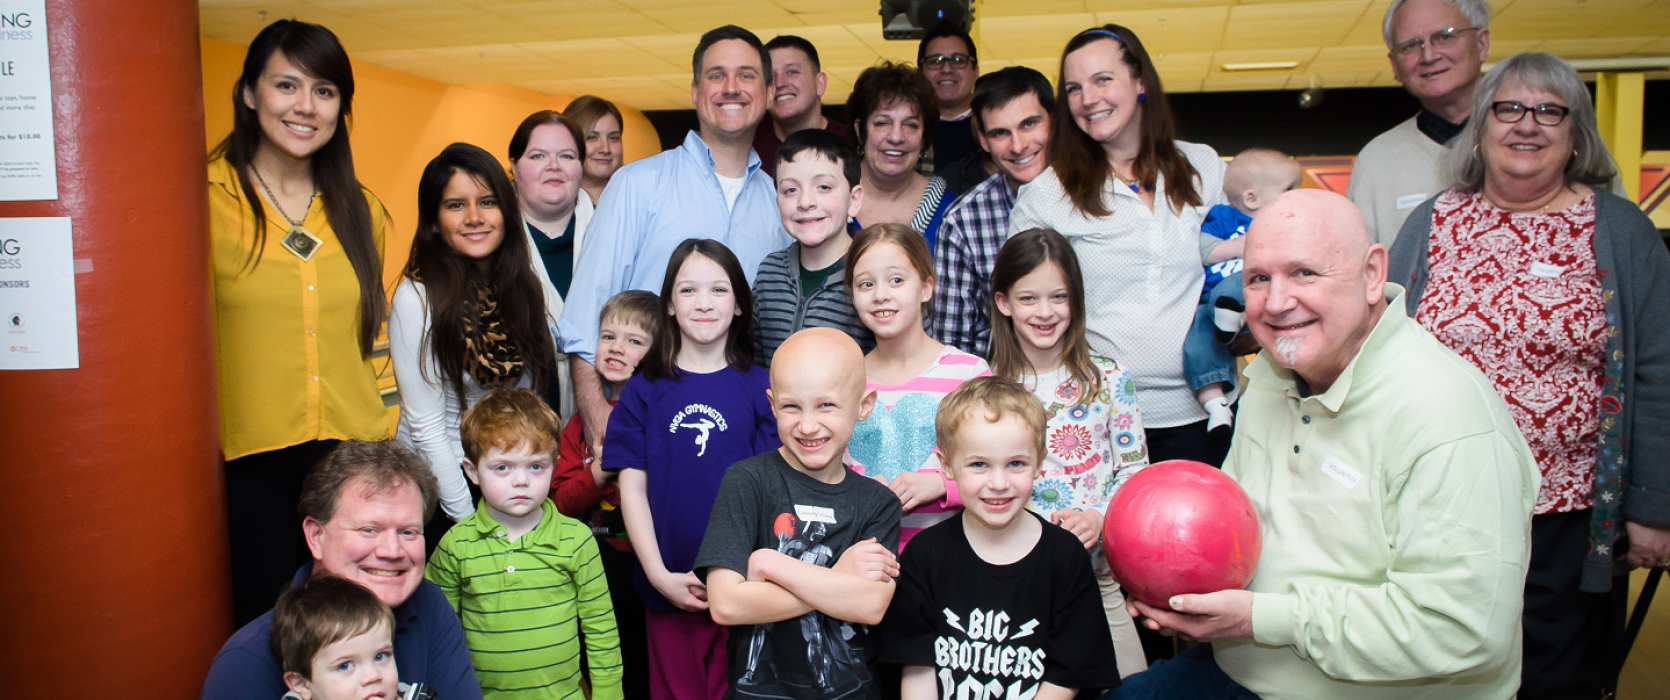 bowling_for_baldness_2015.png